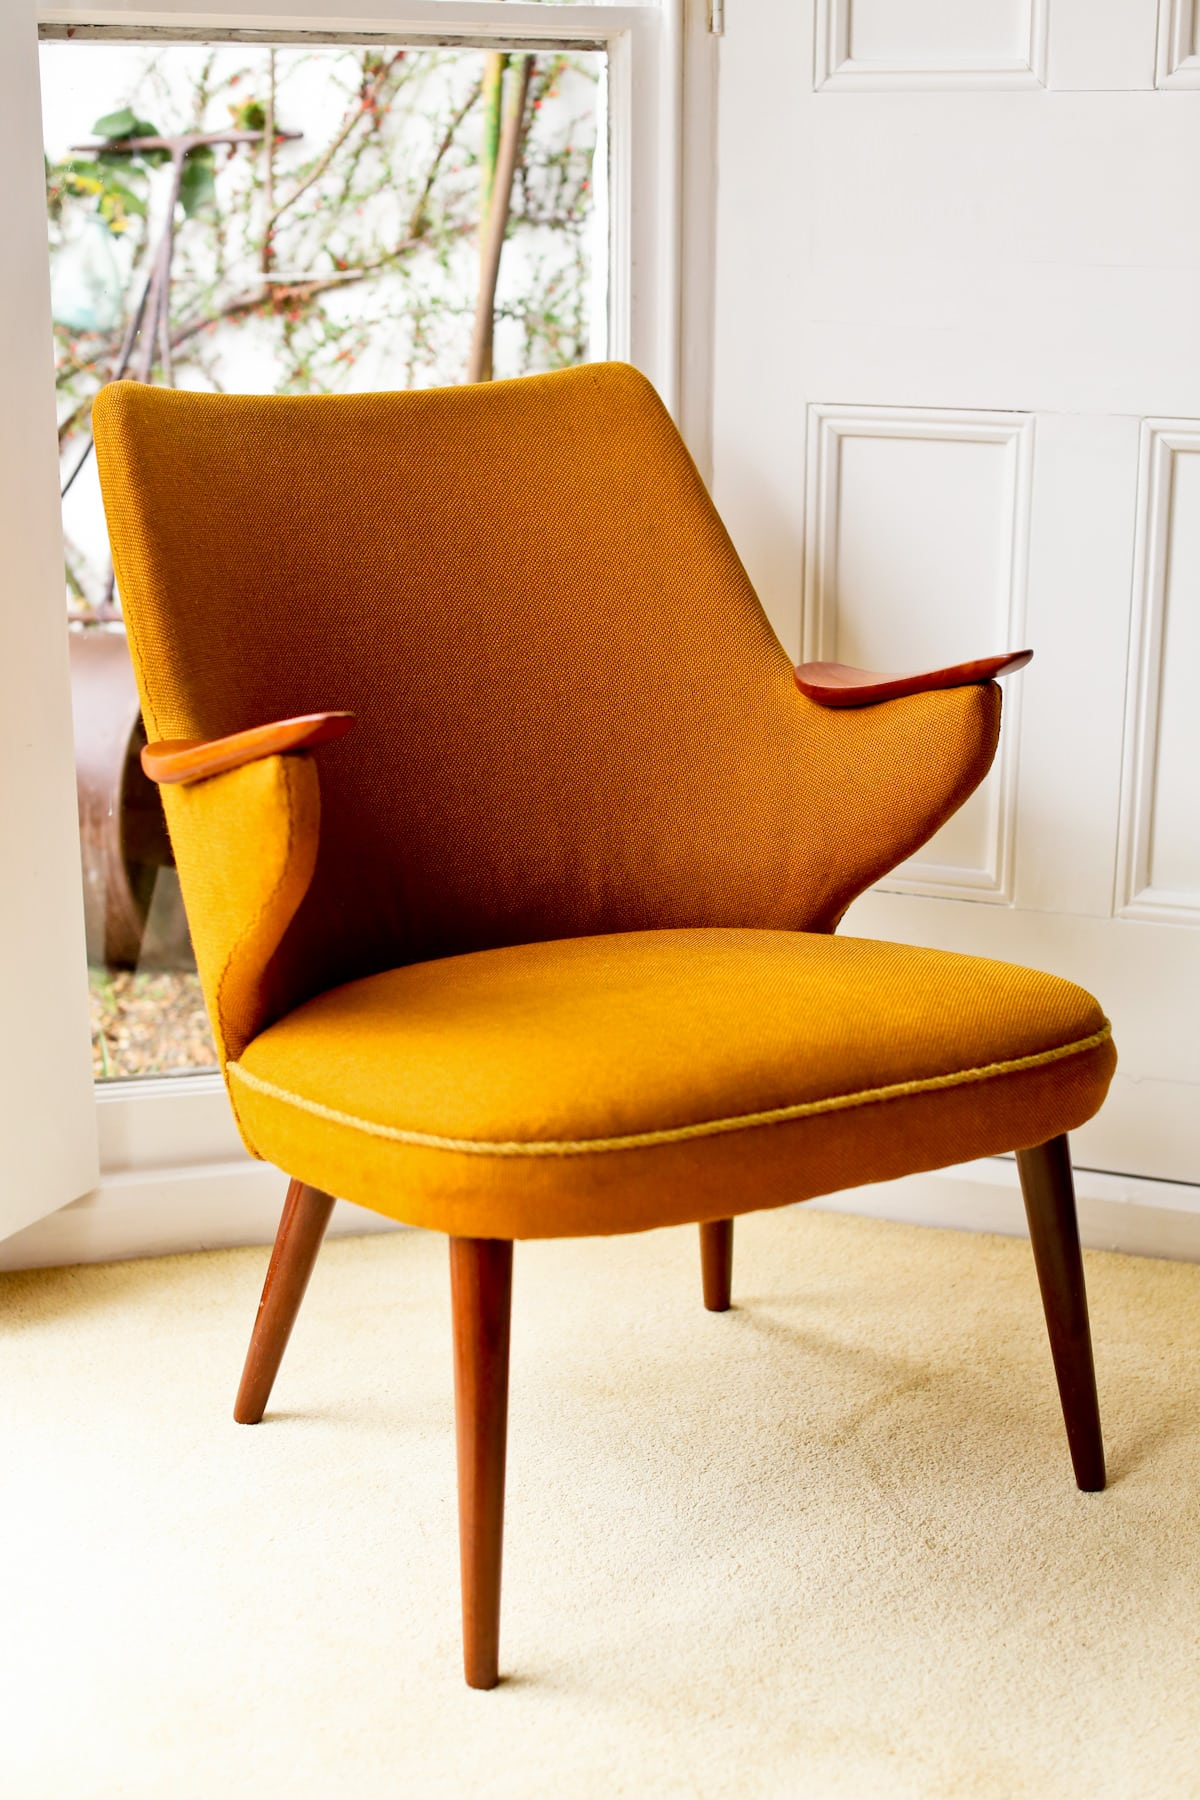 Armchair mid century furniture London 1950's